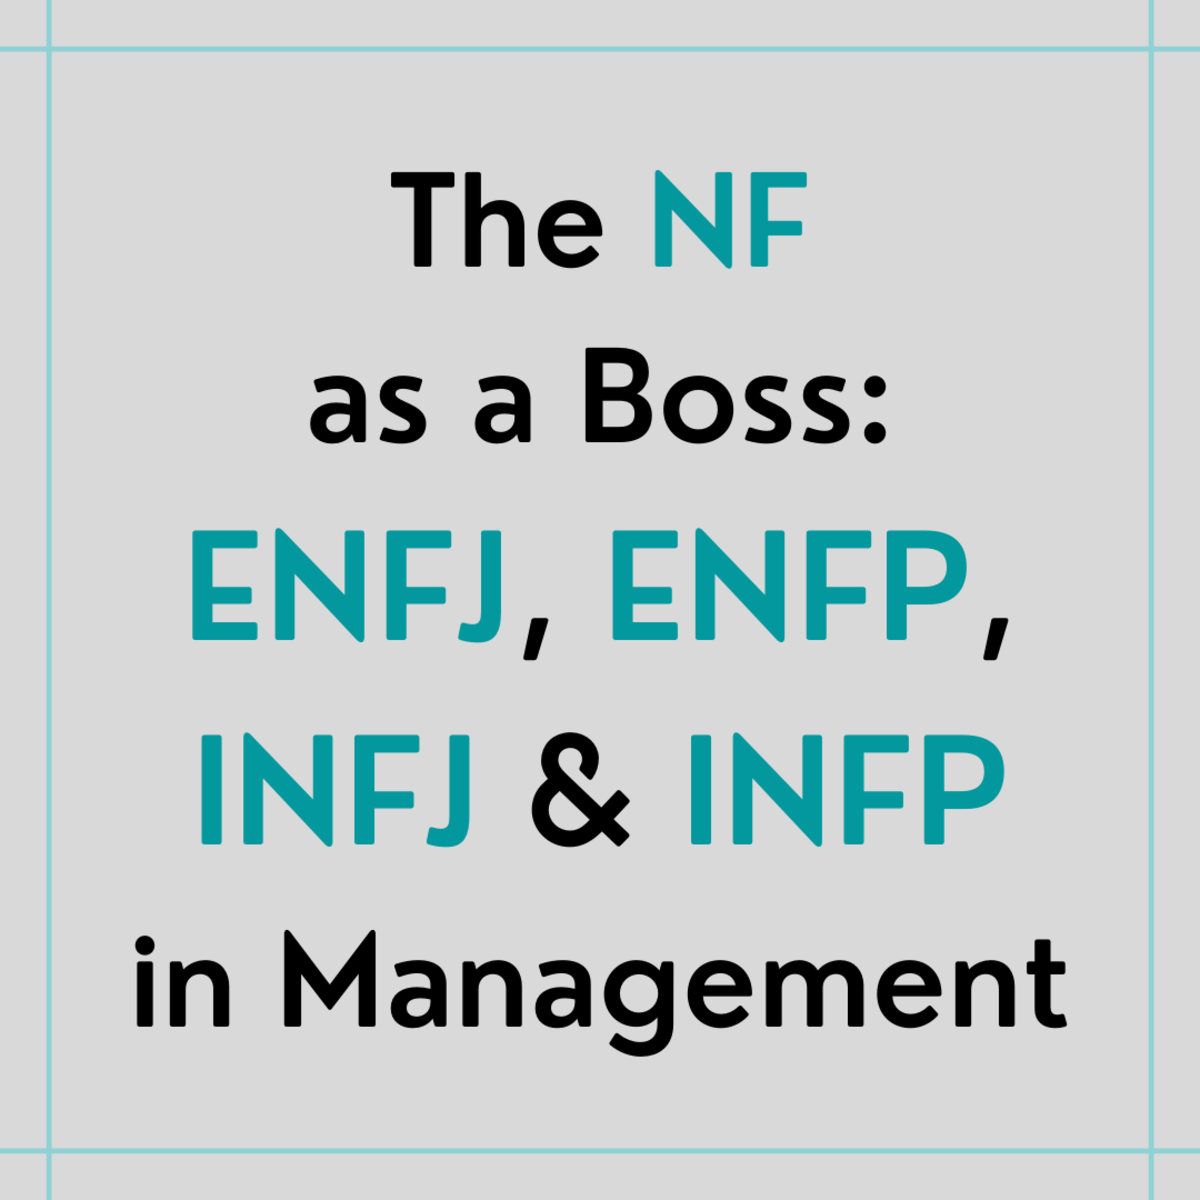 Discover some of the positive and negative characteristics of the NF personality type in a management role.